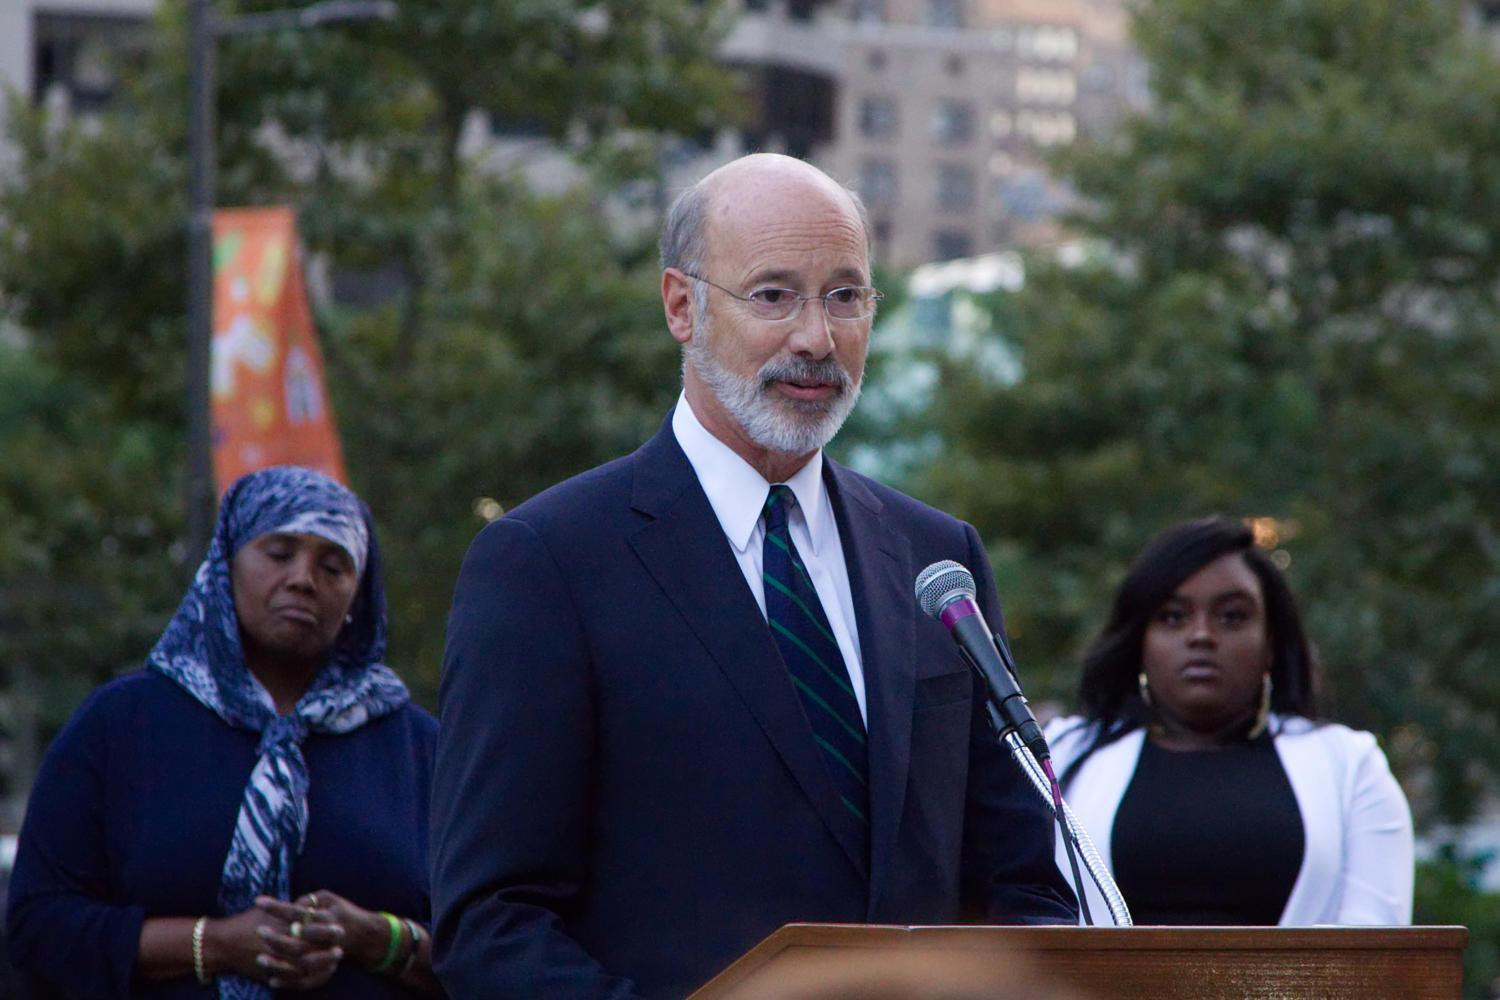 Pennsylvania Gov. Tom Wolf speaks at a vigil for the victims of the mass shooting in Las Vegas outside City Hall in Philadelphia in October. (Bastiaan Slabbers/NurPhoto/Sipa USA/TNS)